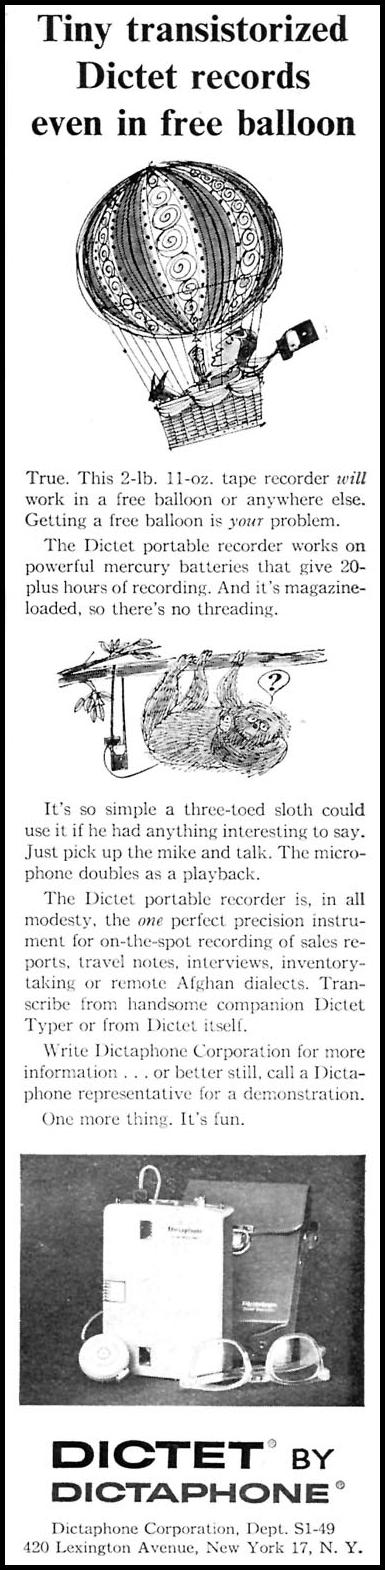 DICTAPHONE DICTET RECORDER SPORTS ILLUSTRATED 04/27/1959 p. 13